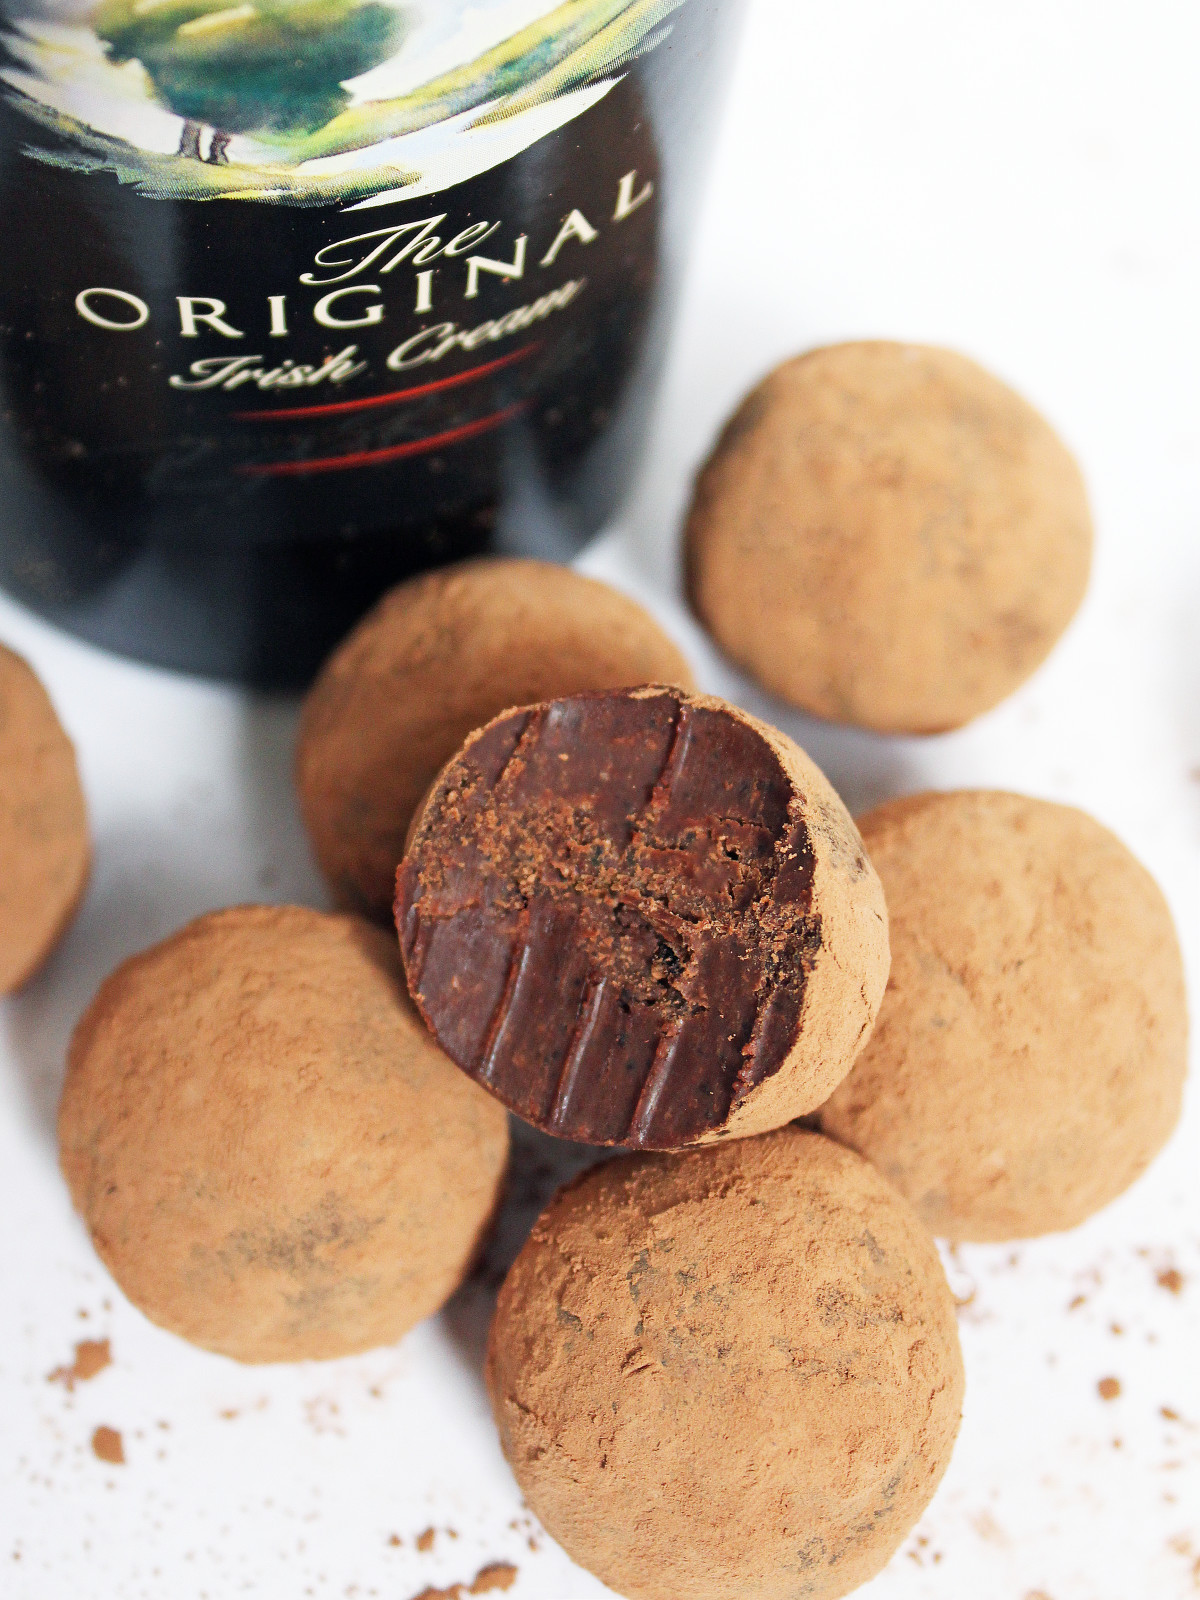 Irish Cream Espresso Truffles